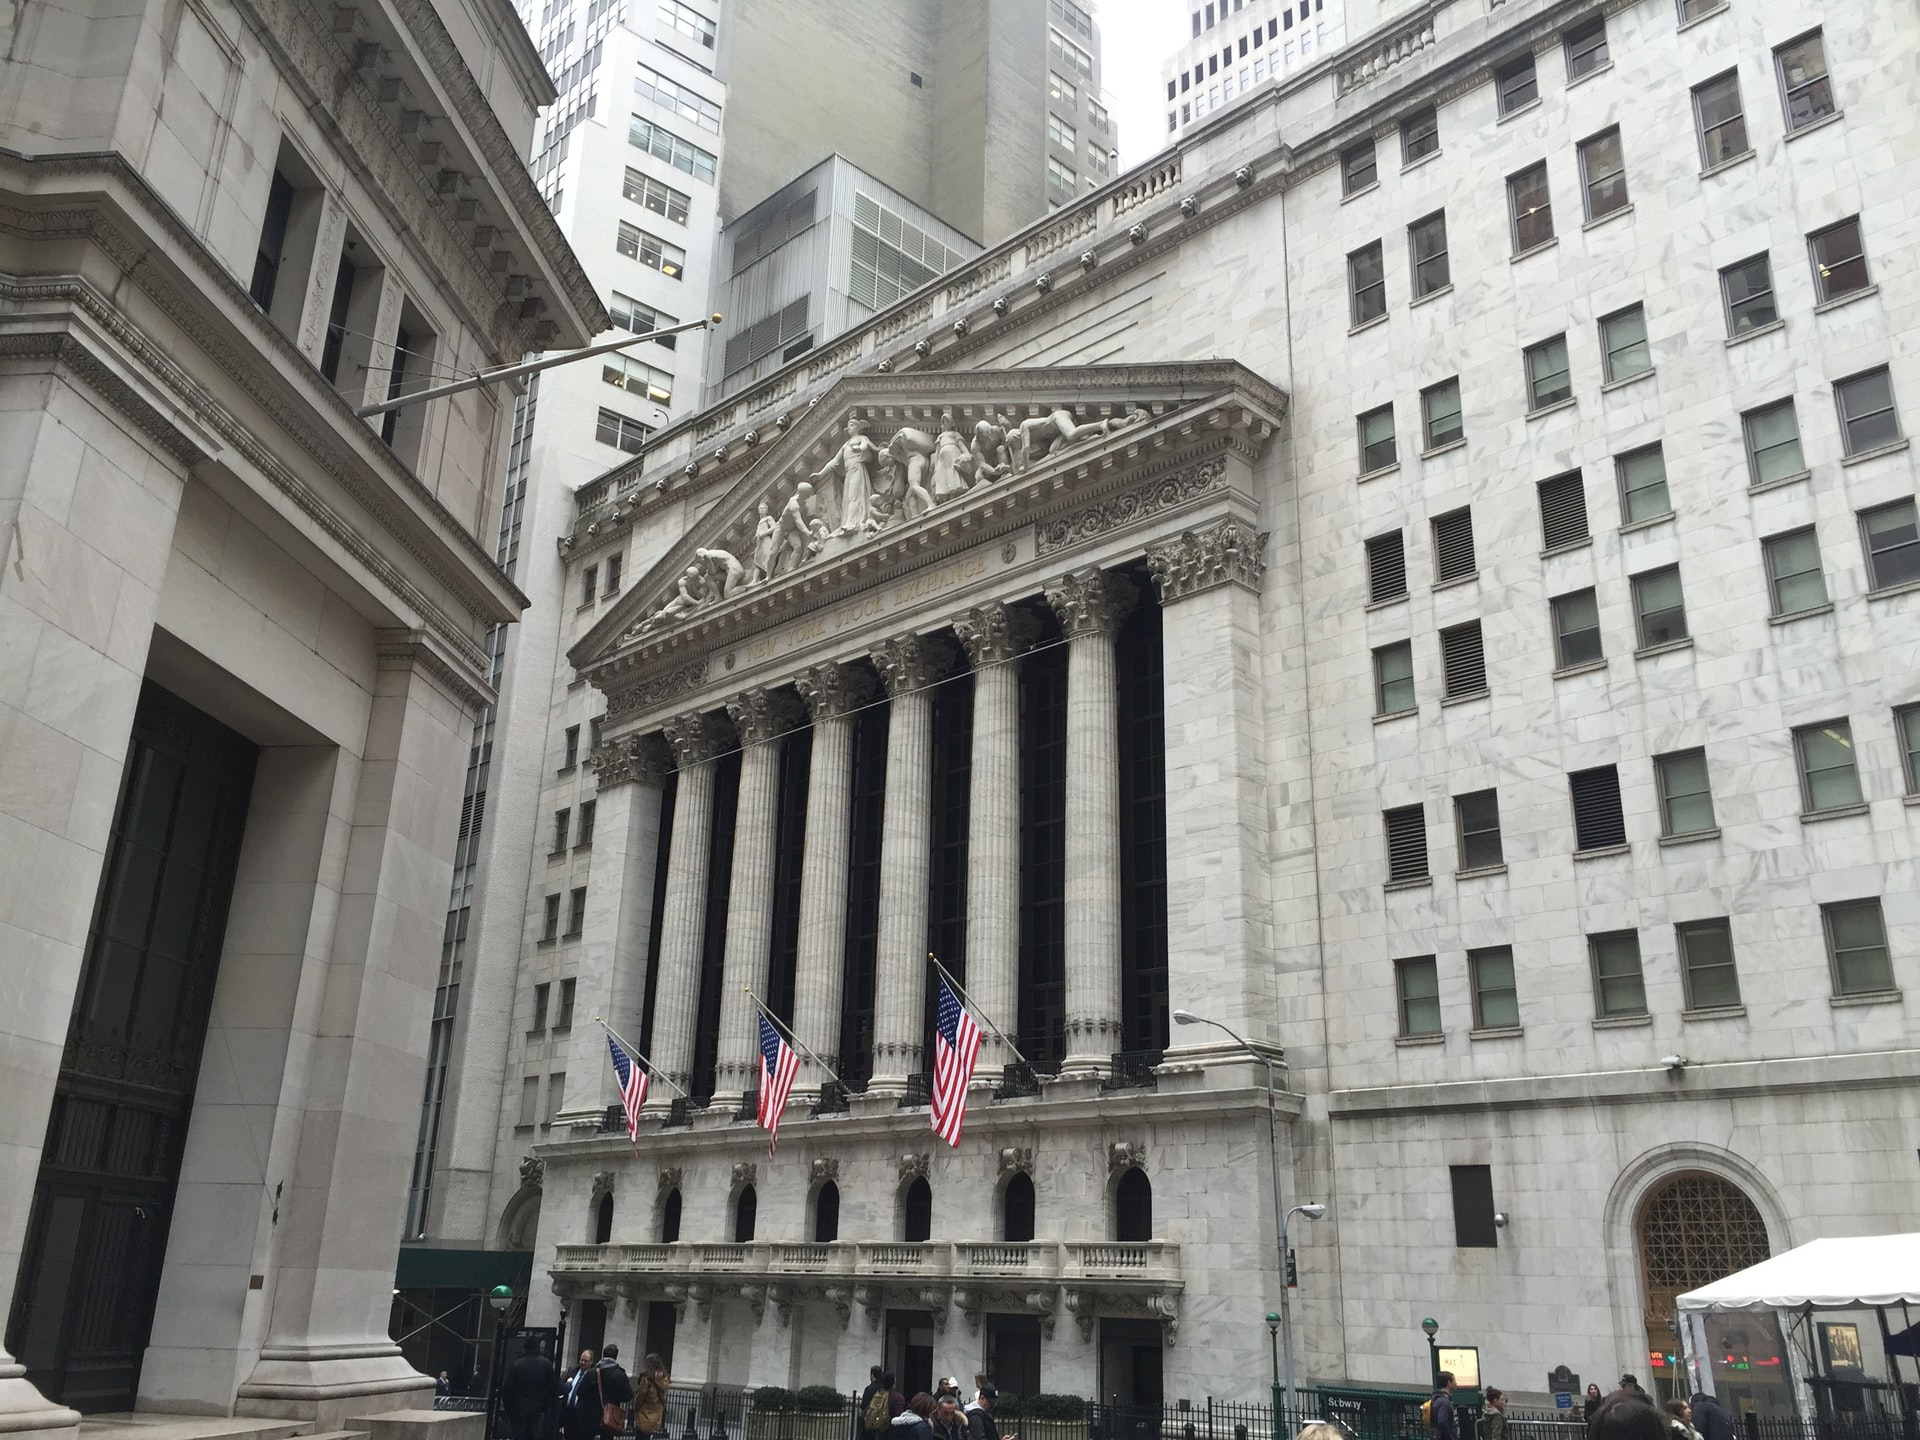 New York Stock Exchange building in NYC